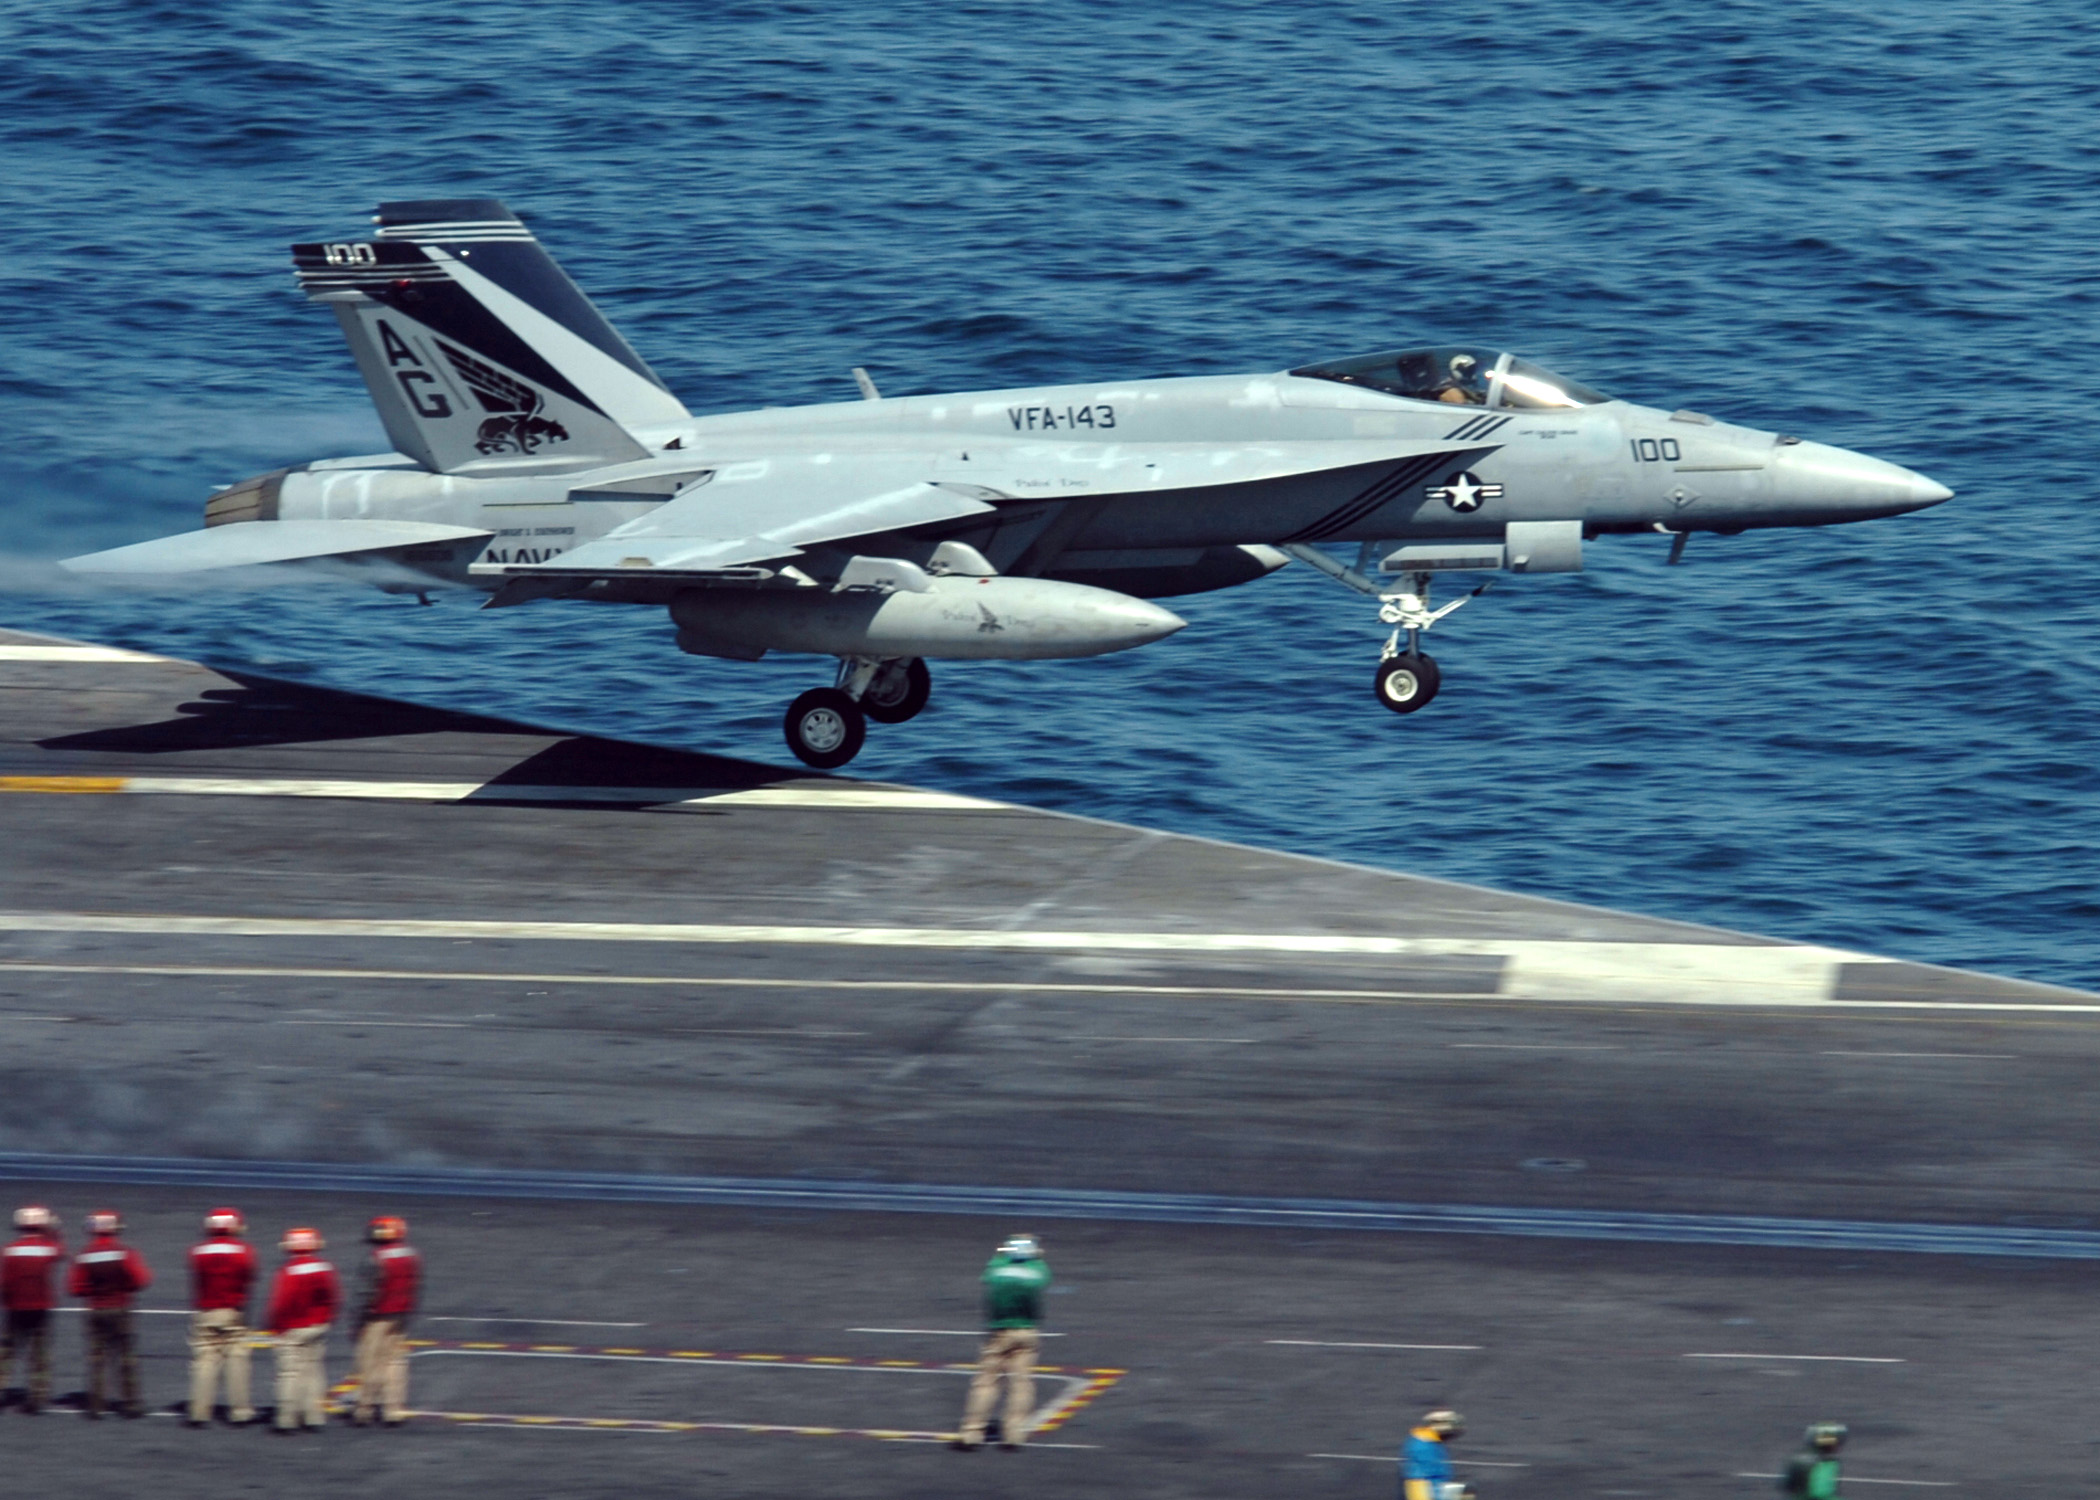 US Navy 070522 N 8907D 003 An F A 18E Super Hornet from the Pukin Dogs of Strike Fighter Squadron VFA 143 launches from the flight deck of the Nimitz class aircraft carrier USS Dwight D. Eisenhower CVN 69